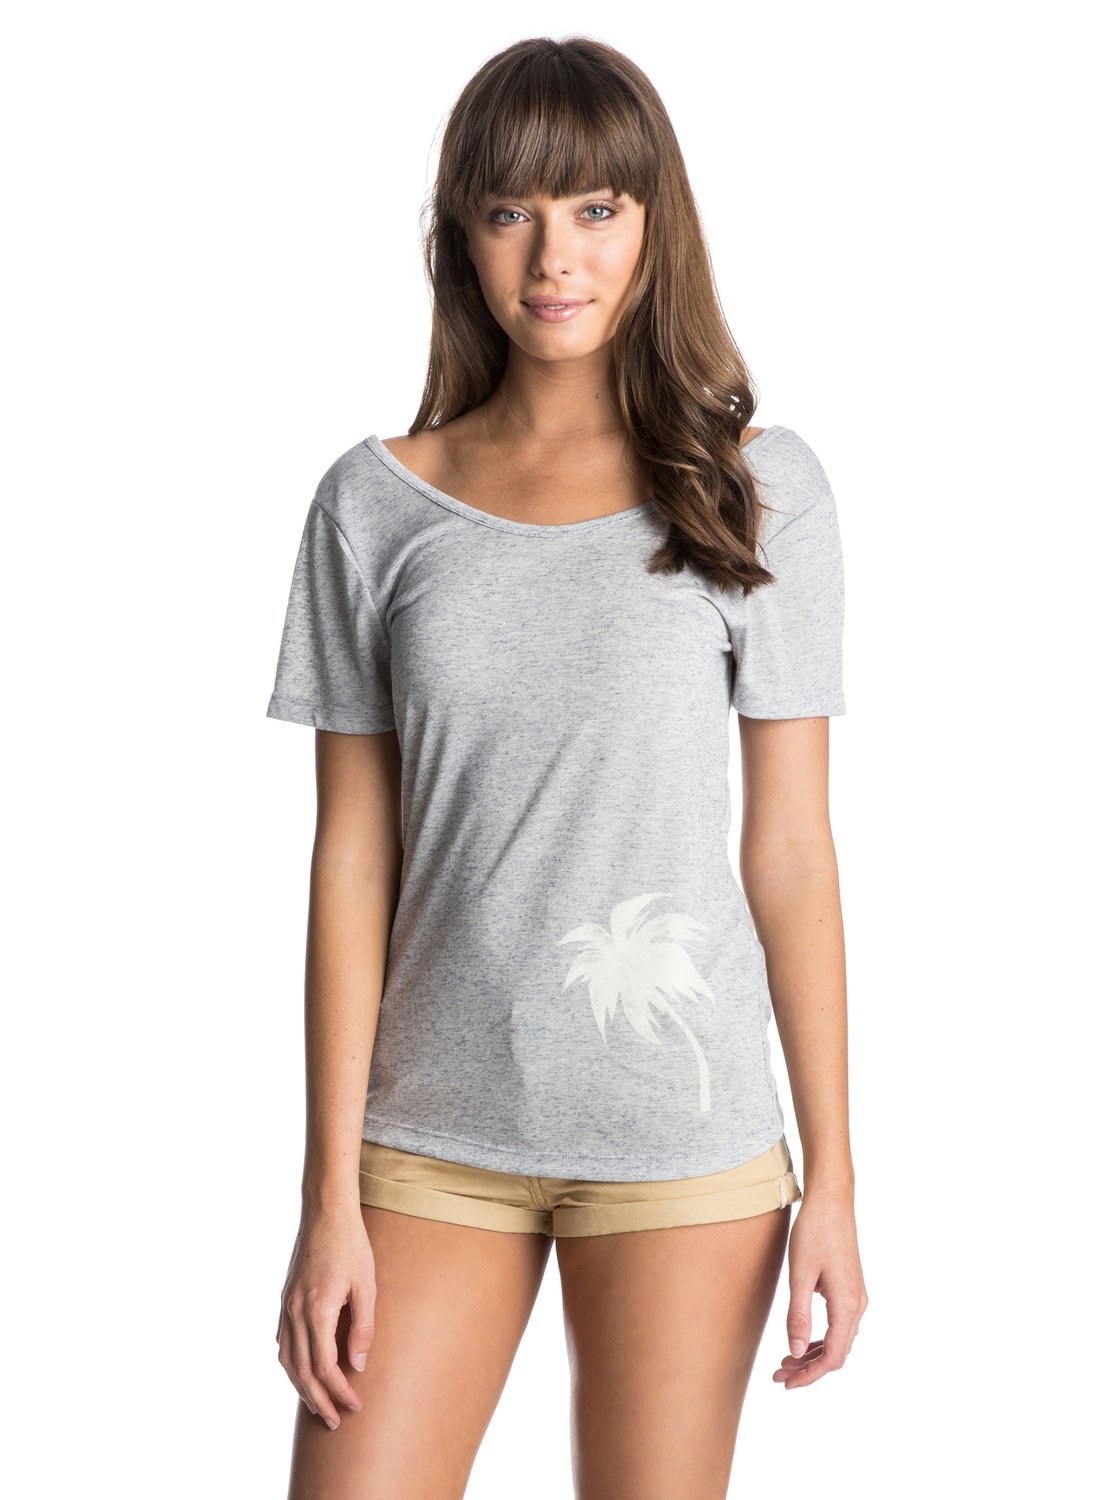 Scoop Back Tee D - RoxyScoop Back Tee D � ������� �� ��������� ������ Roxy �����-���� 2015. ��������������: ������� �������� � �������, �� � �������, ������ ����� (140 �/�?). �������������: ����������� ����, ������ � 85% �������, 15% ��.<br>